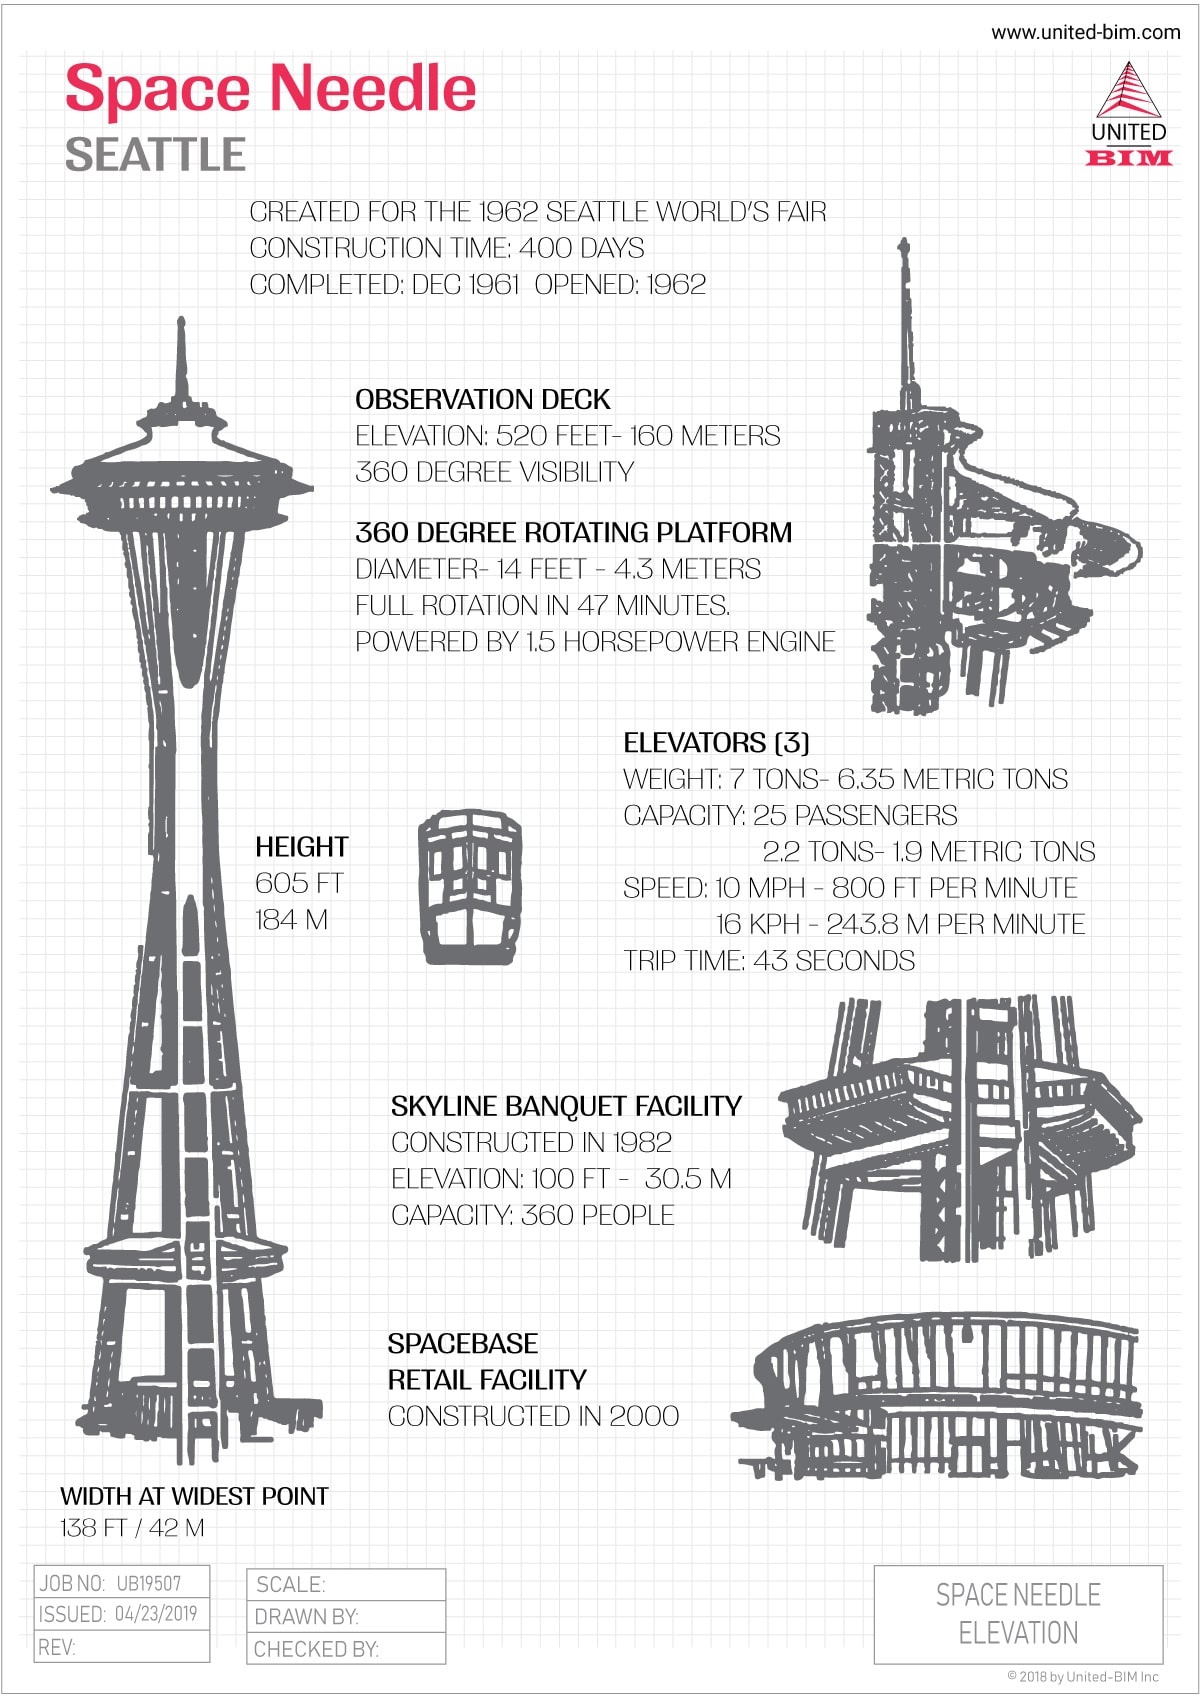 Space Needle Elevation